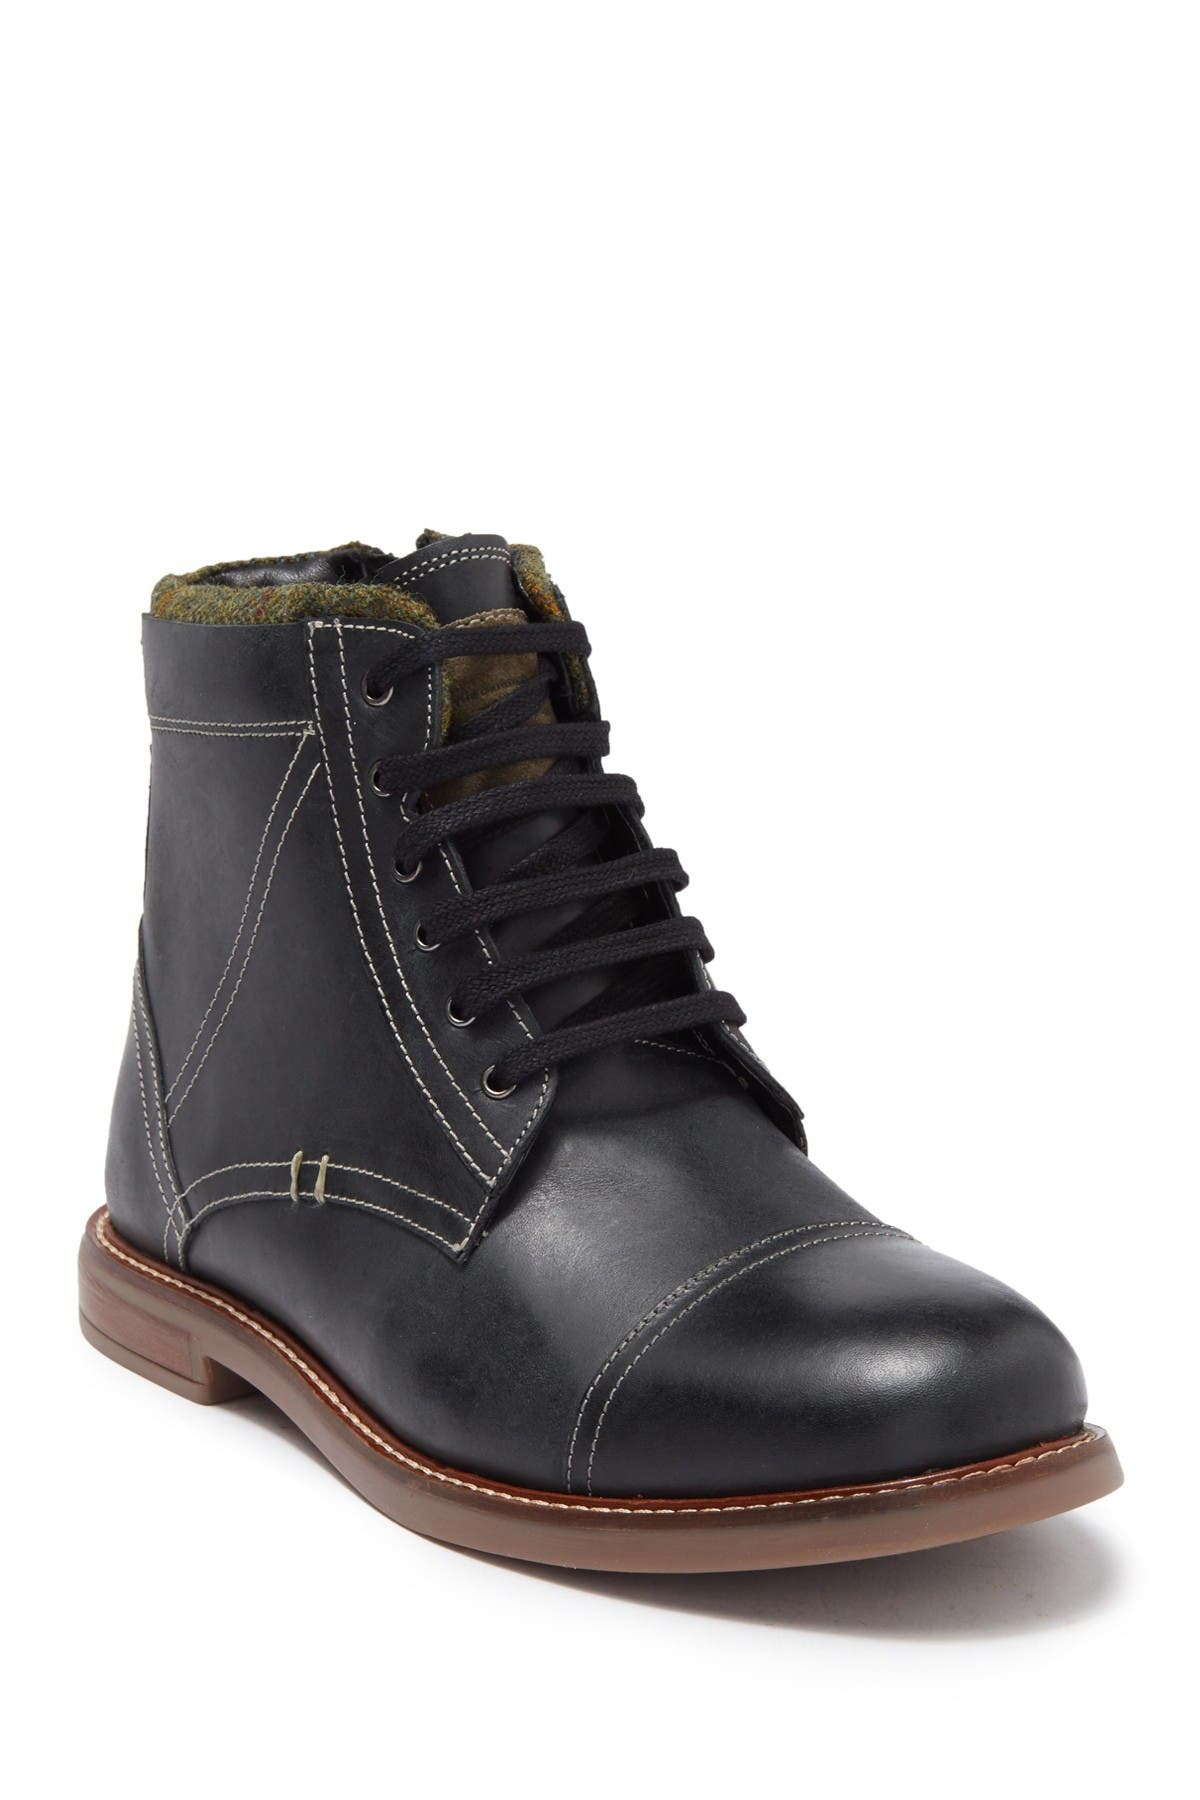 Image of Ben Sherman Luke Cap Woven Collar Toe Boot